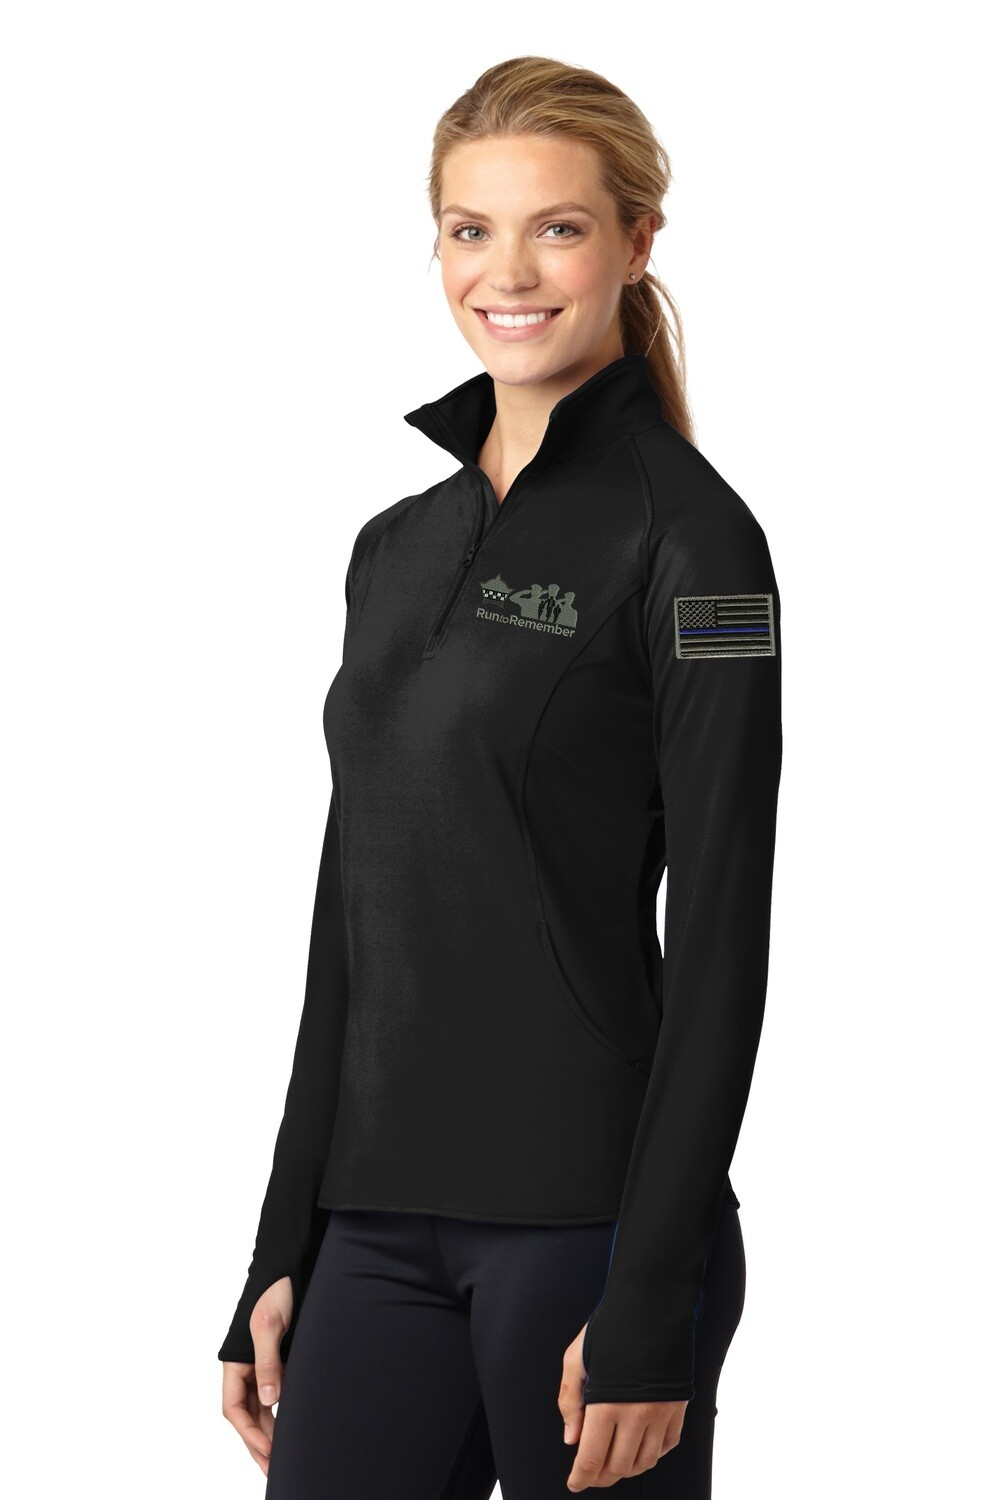 Run To Remember Blue Line Flag Ladies Sport-Wick® Stretch 1/2-Zip Pullover Black LST850